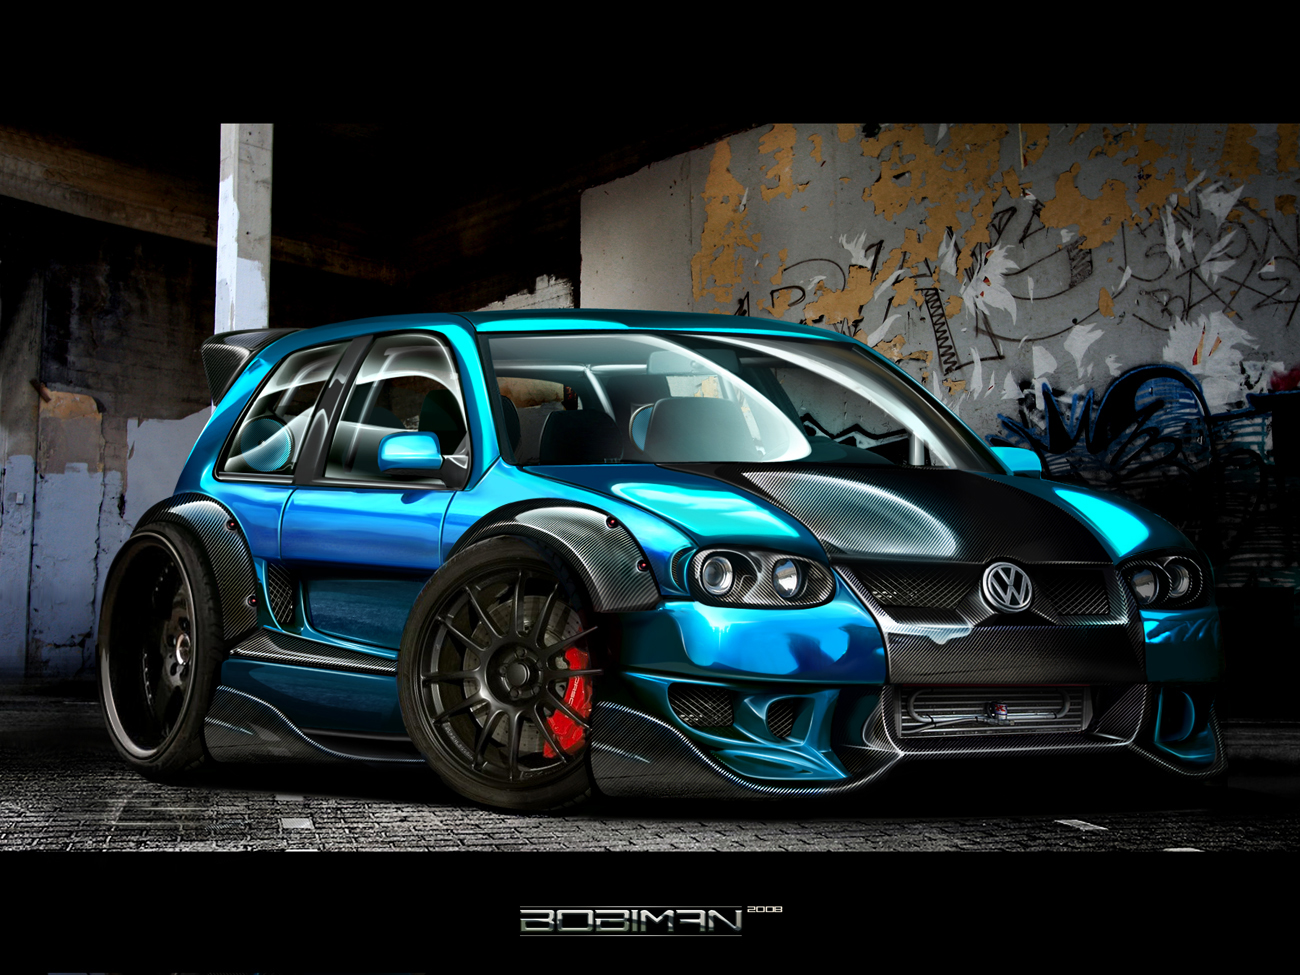 car wallpapernice car wallpapersnice car wallpaper picturesnice car 1300x975